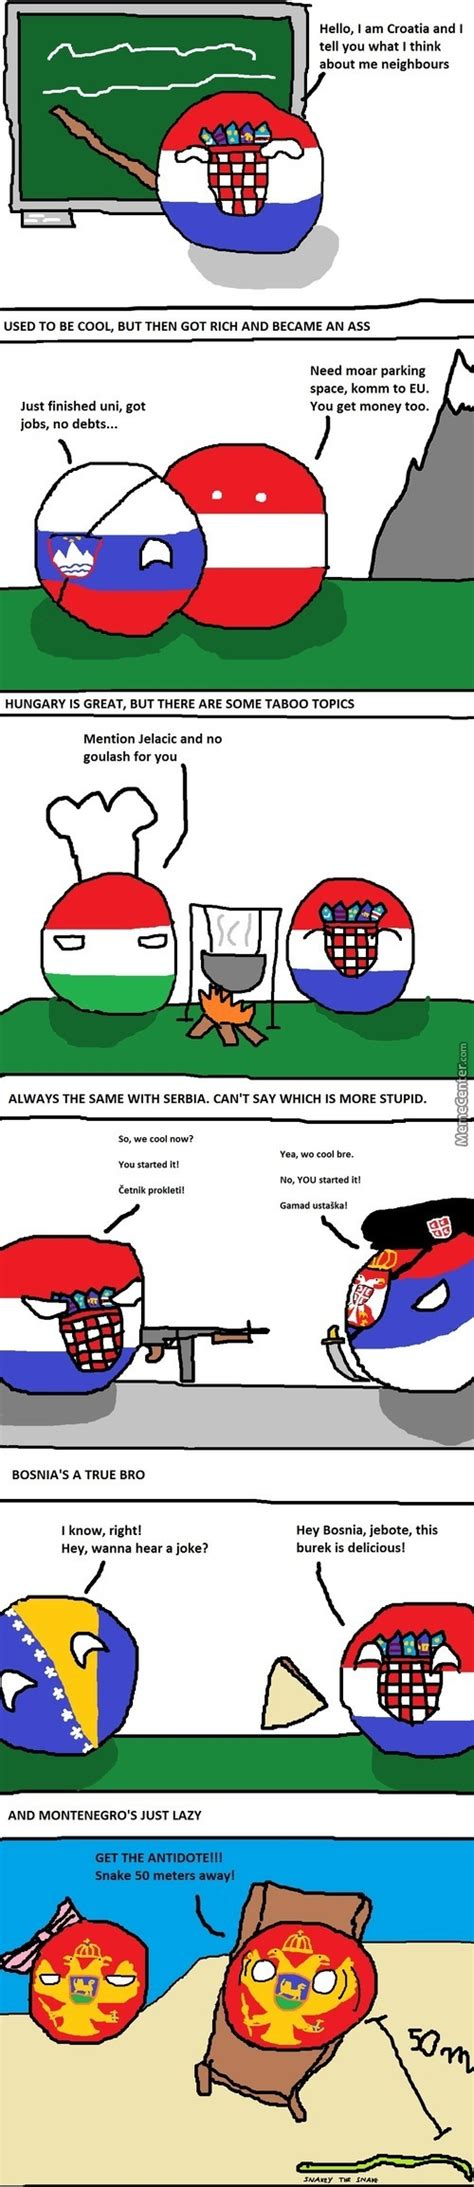 Countryball Meme - countryball memes best collection of funny countryball